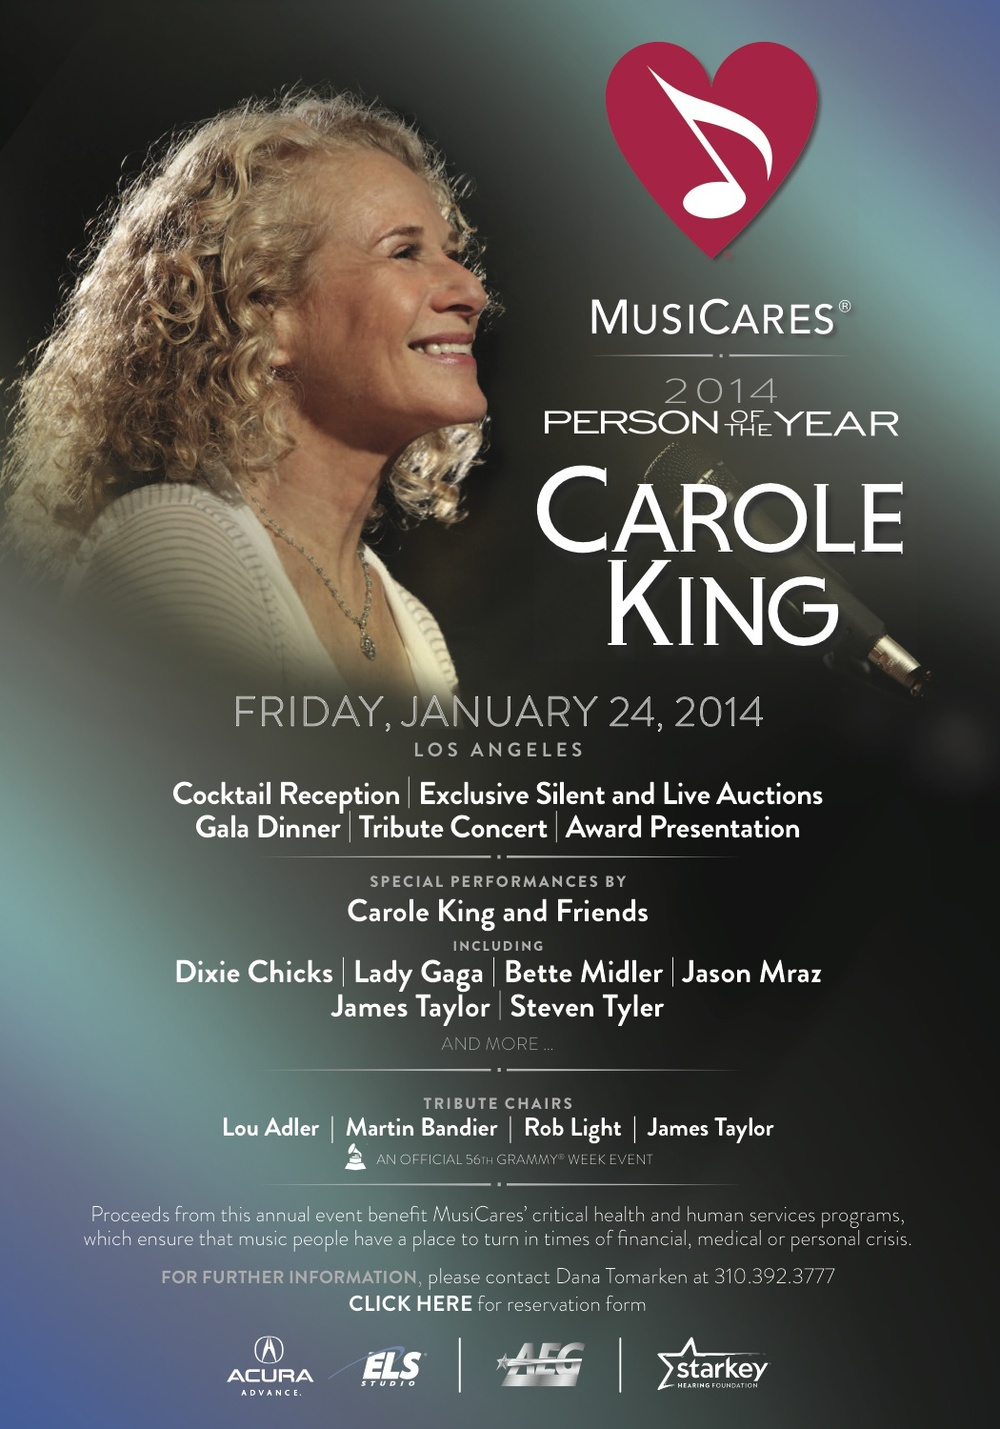 Carole King-Save the Date.jpg